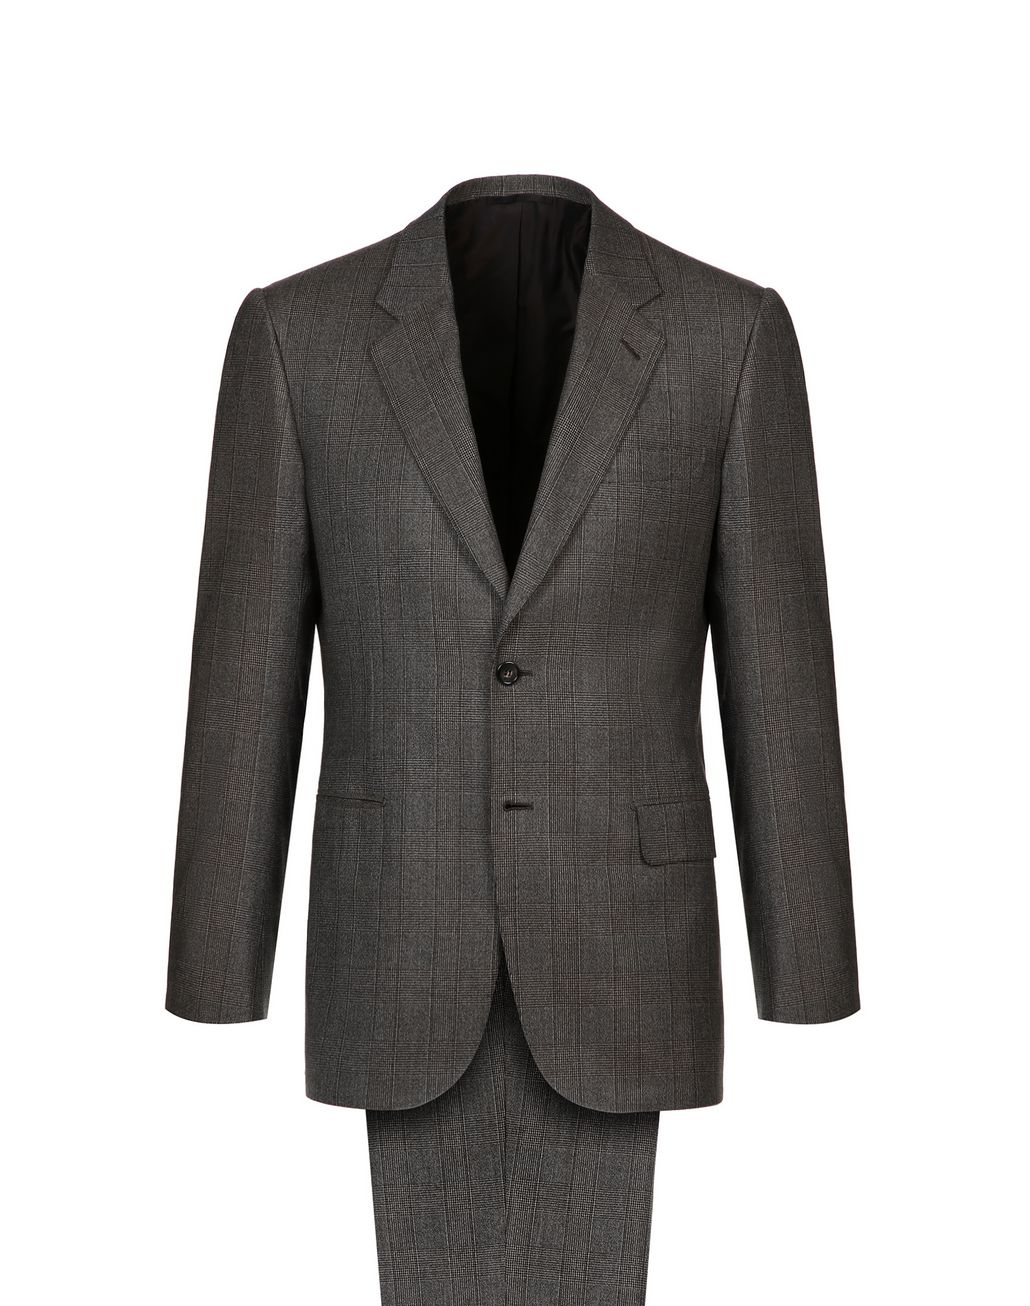 BRIONI Light Brown Plaid Parioli Suit Suits & Jackets Man f